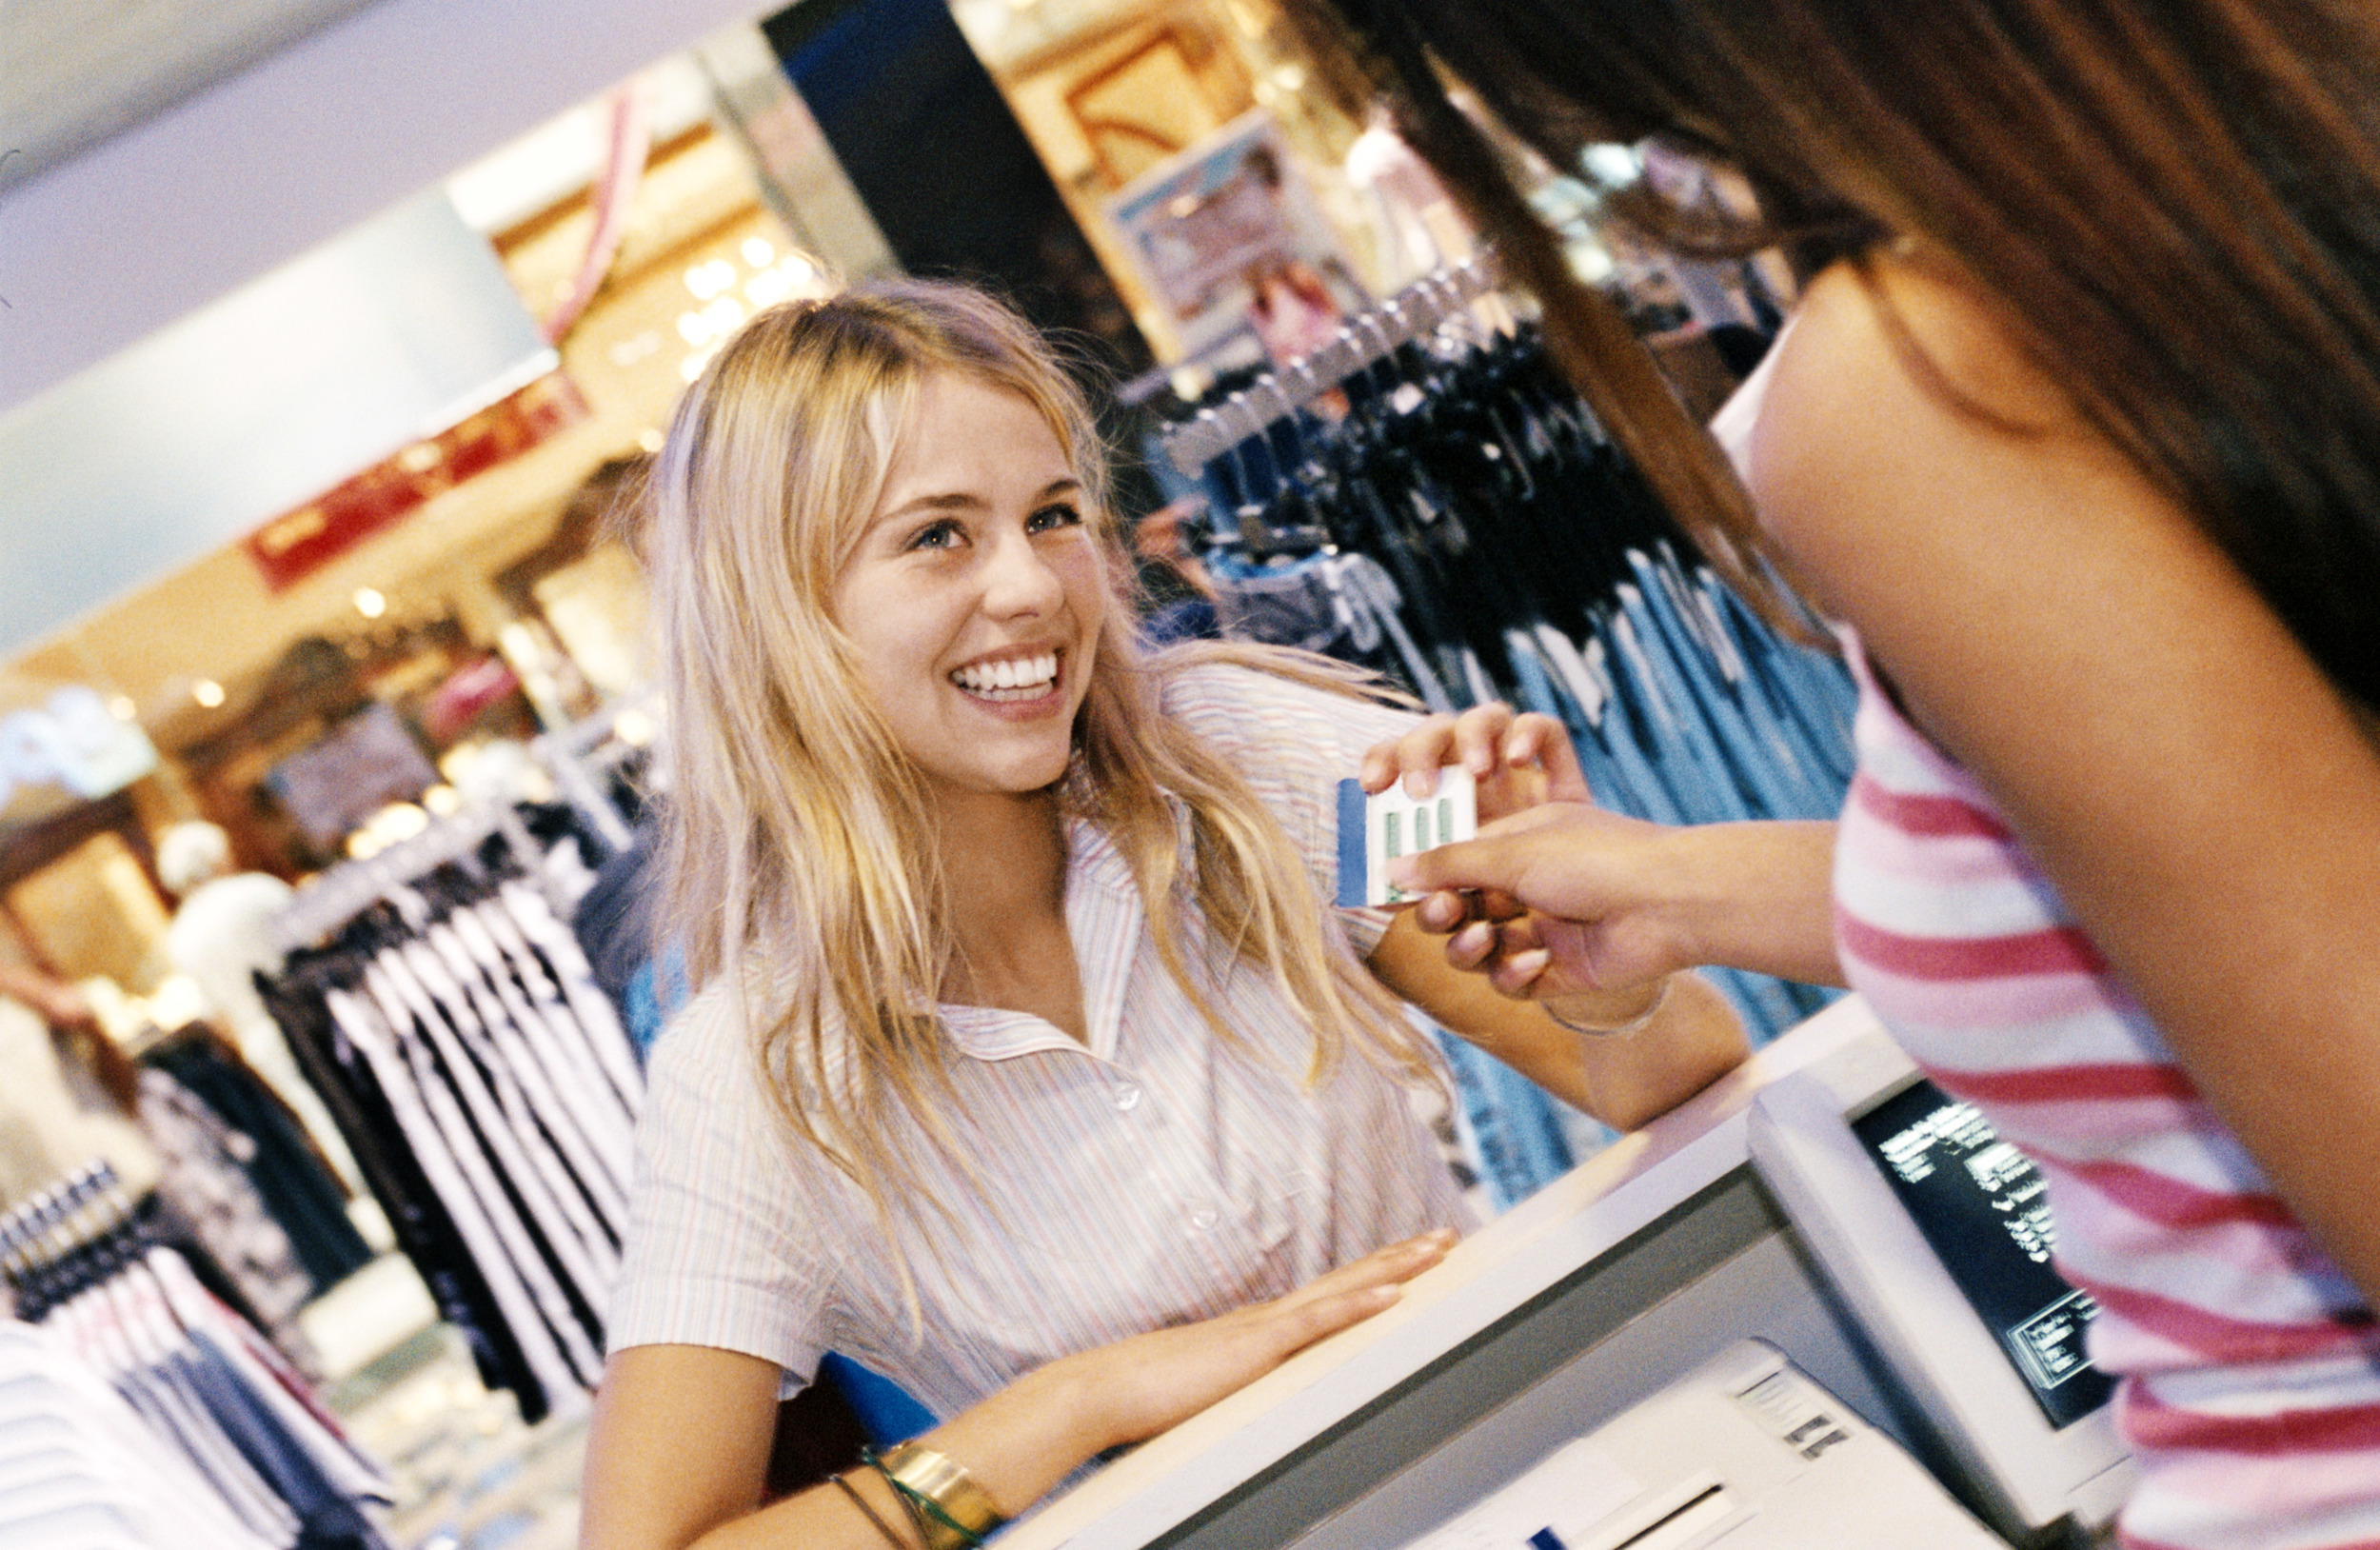 get paid to shop make money while buying holiday gifts news to 15 your credit card is secure